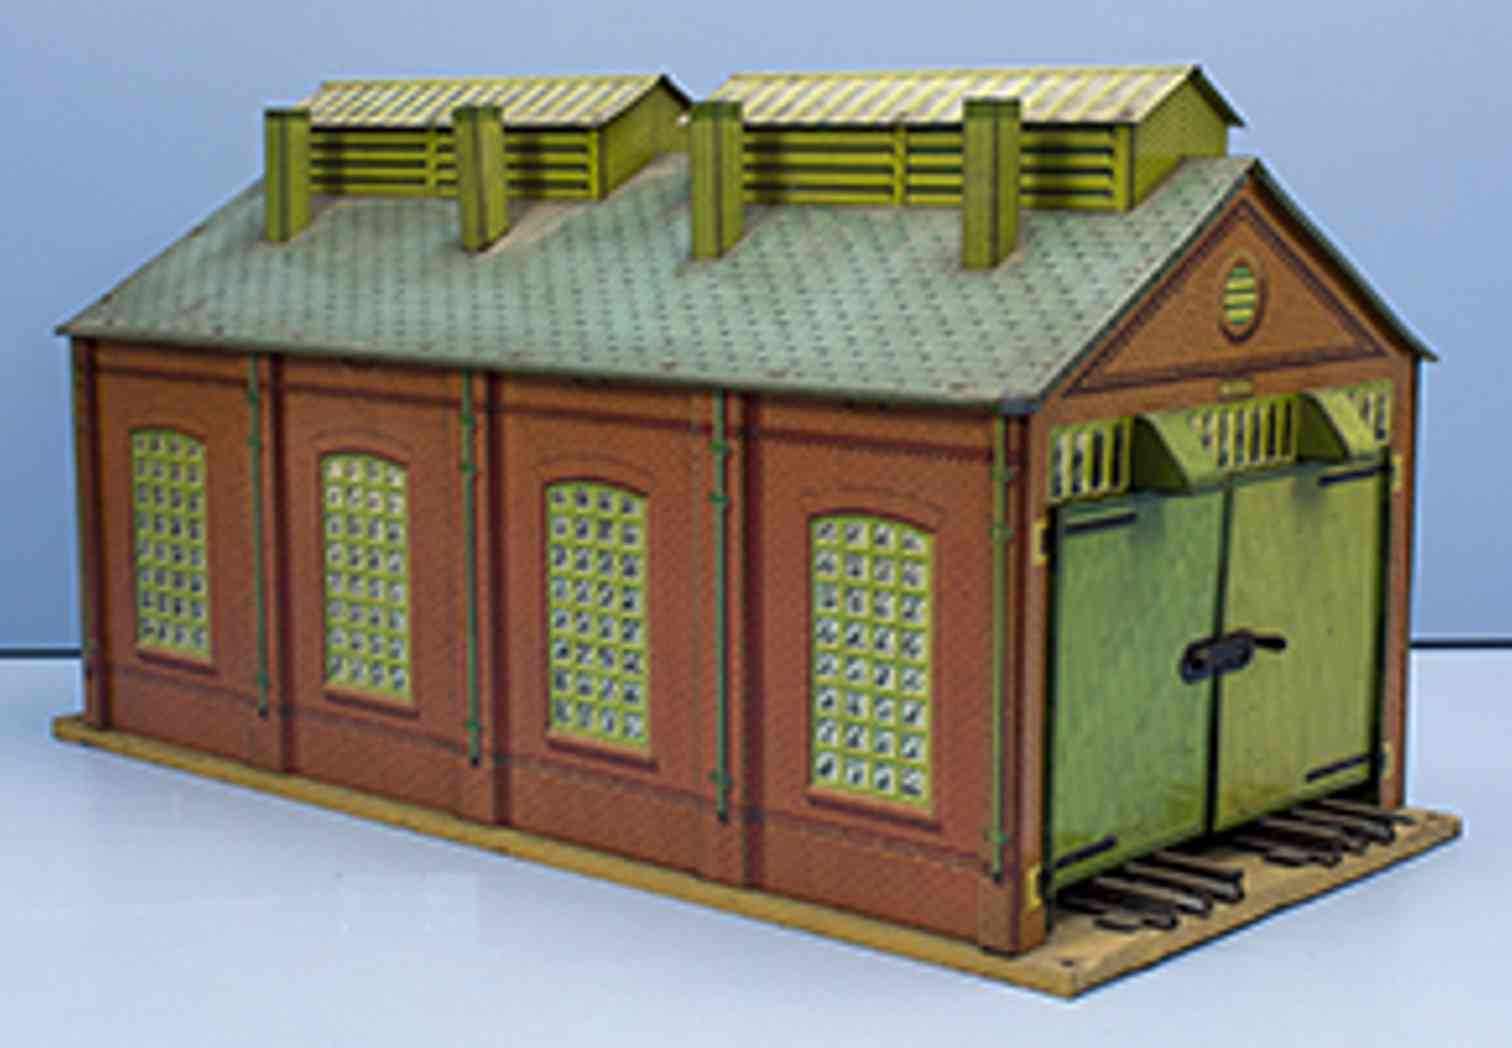 hornby railway toy 2-place locomotive shed with tracks for electrical operation